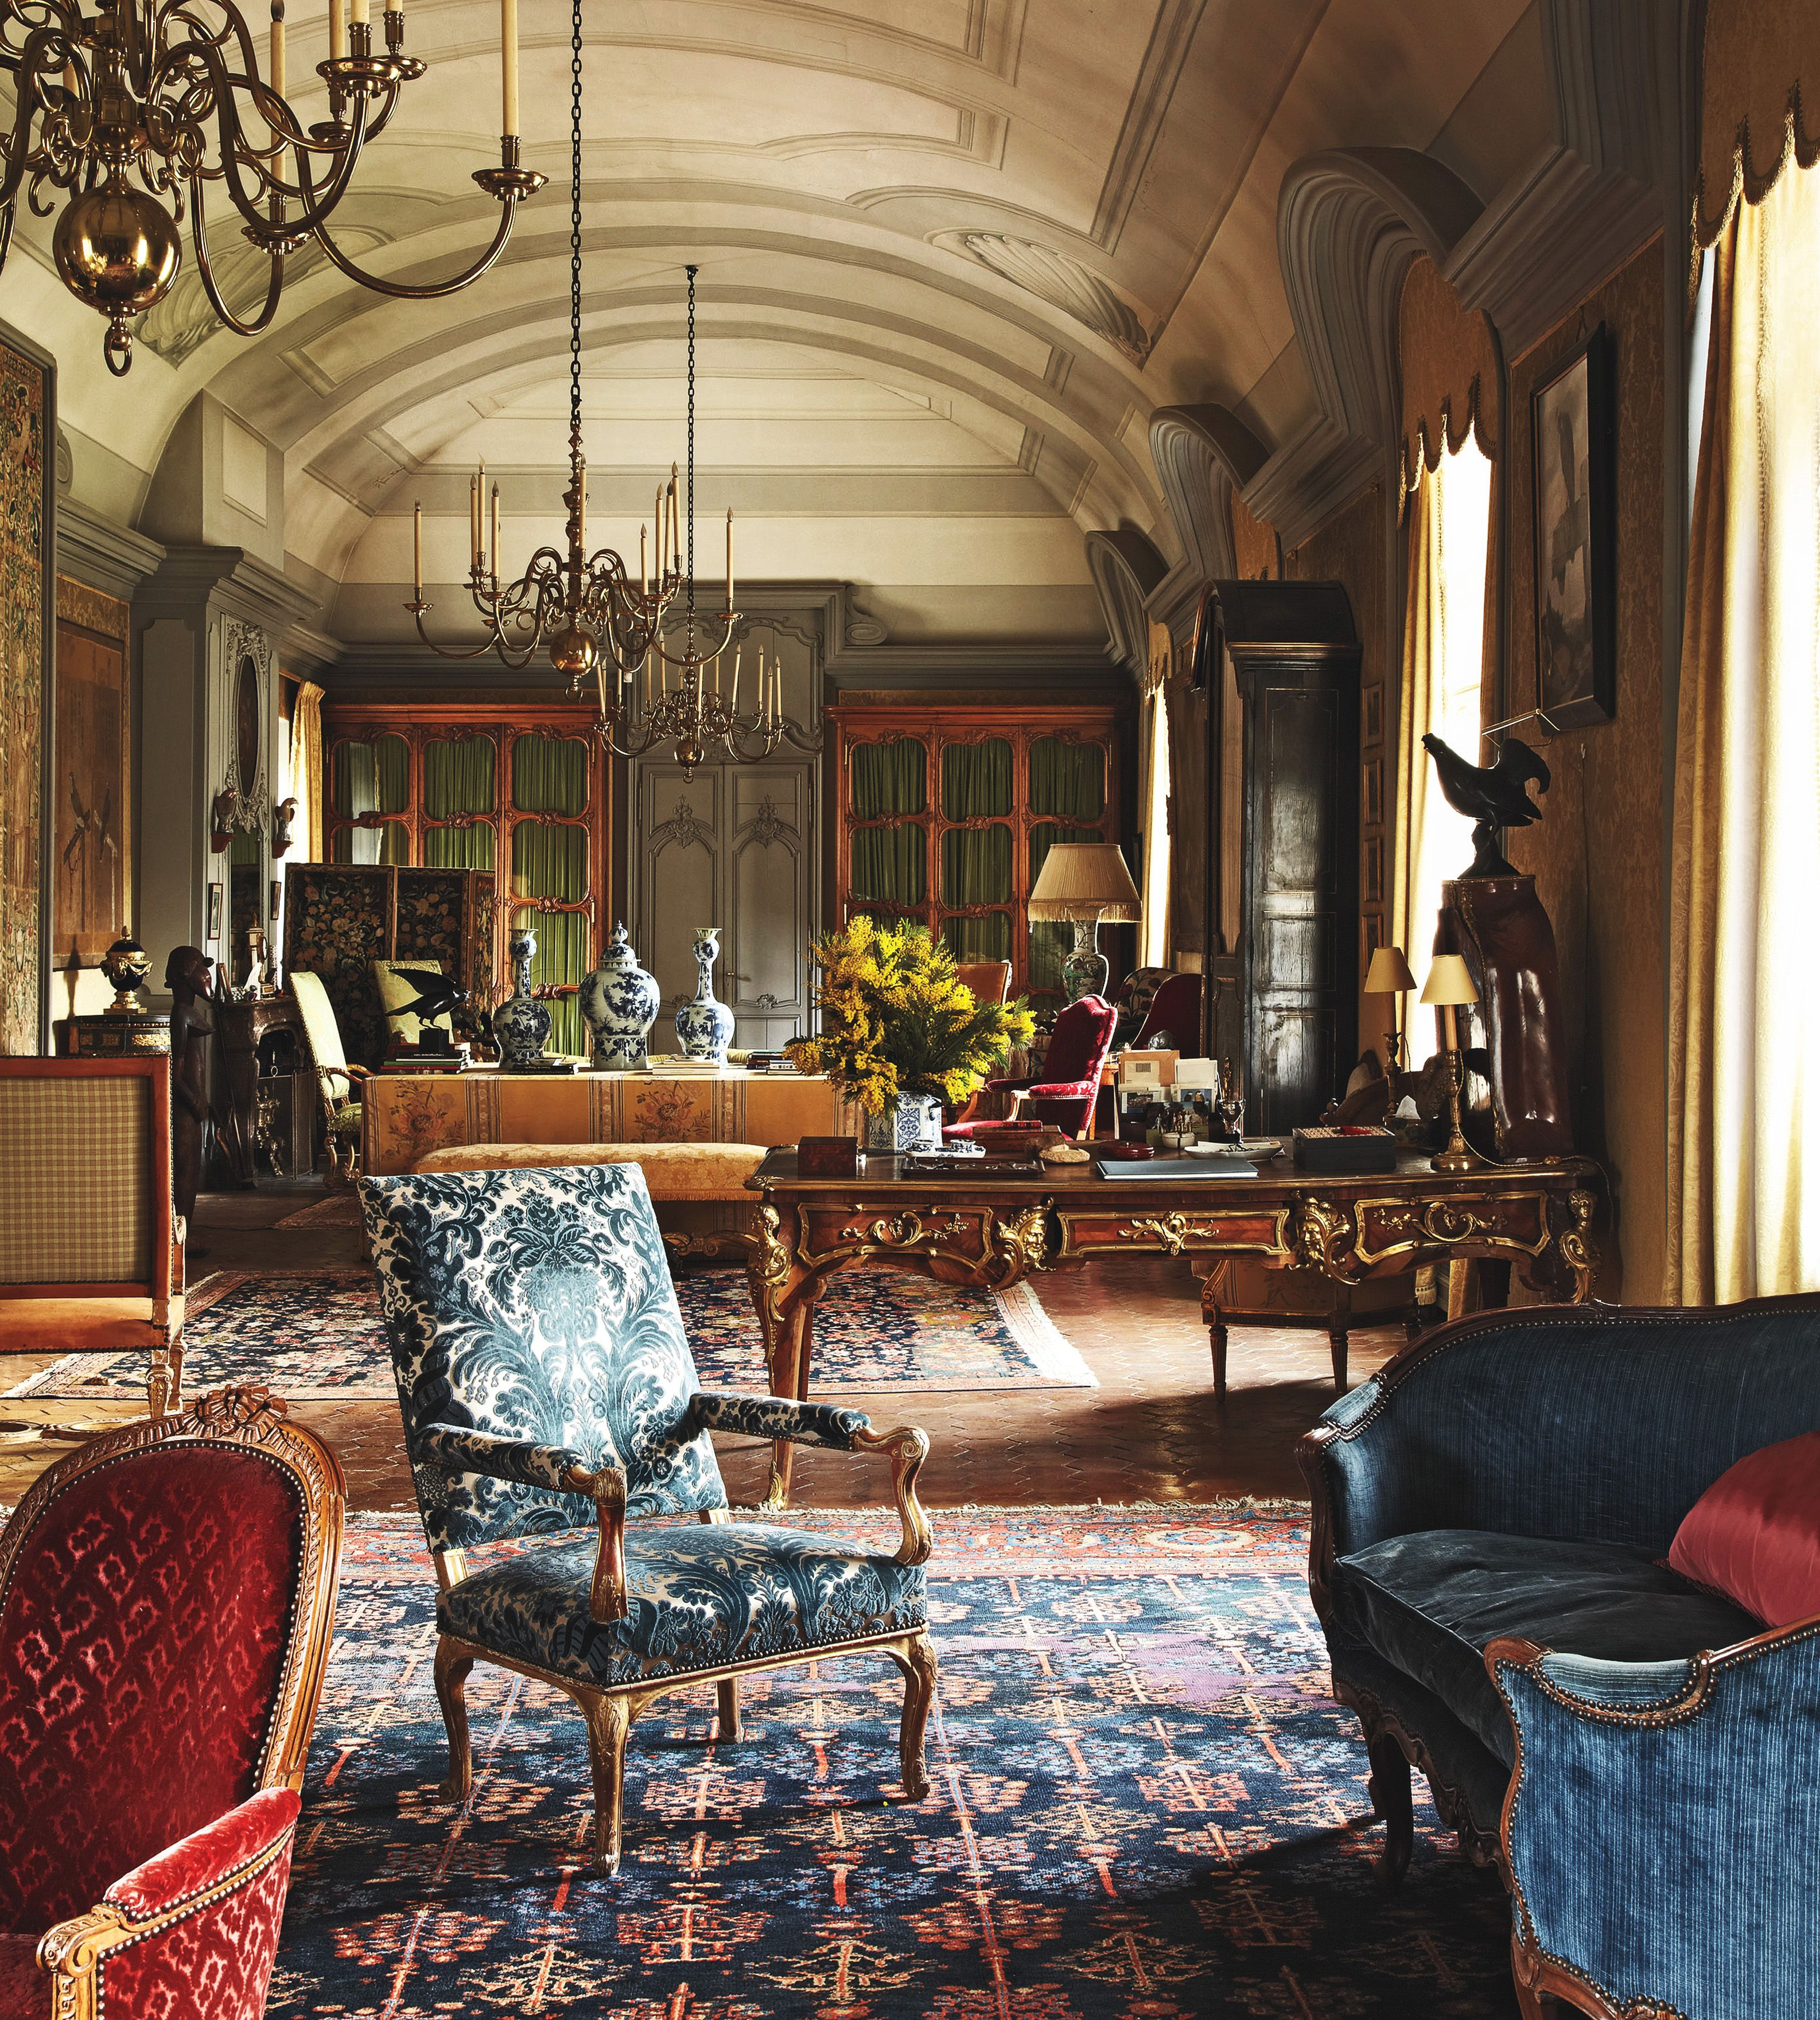 16th Century Chateau De Fleury A French Castle Furnished With Louis Xv And Xvi Antiques Interieur Engels Interieur Wonen